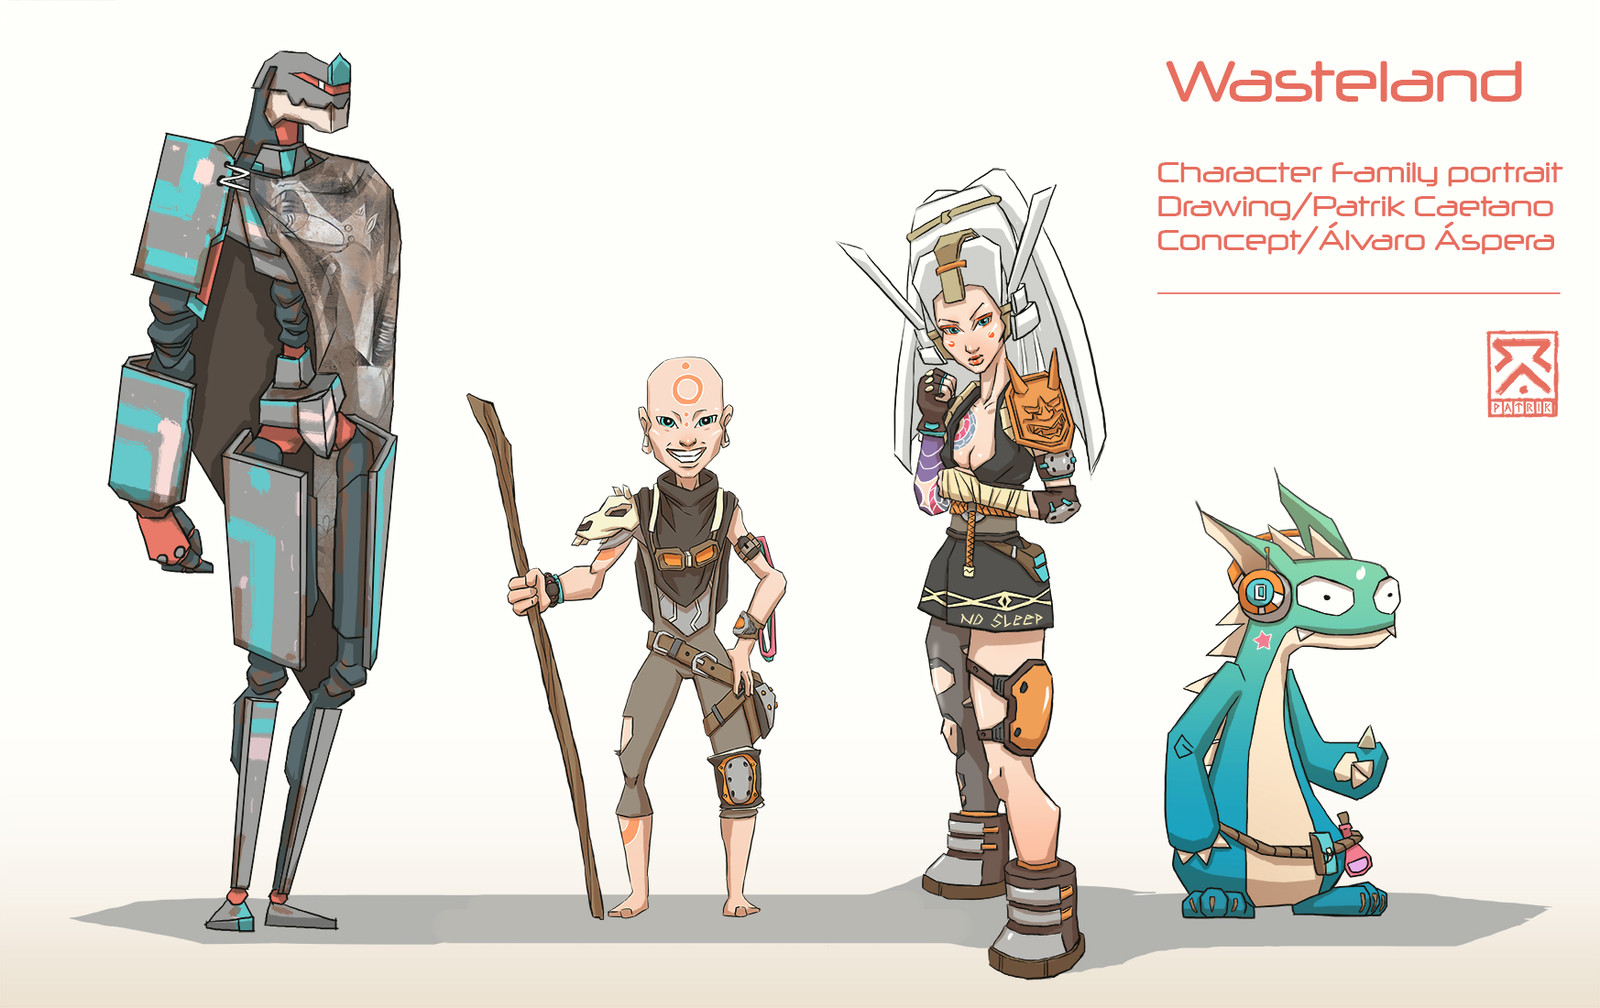 WAsteland Character deign line up